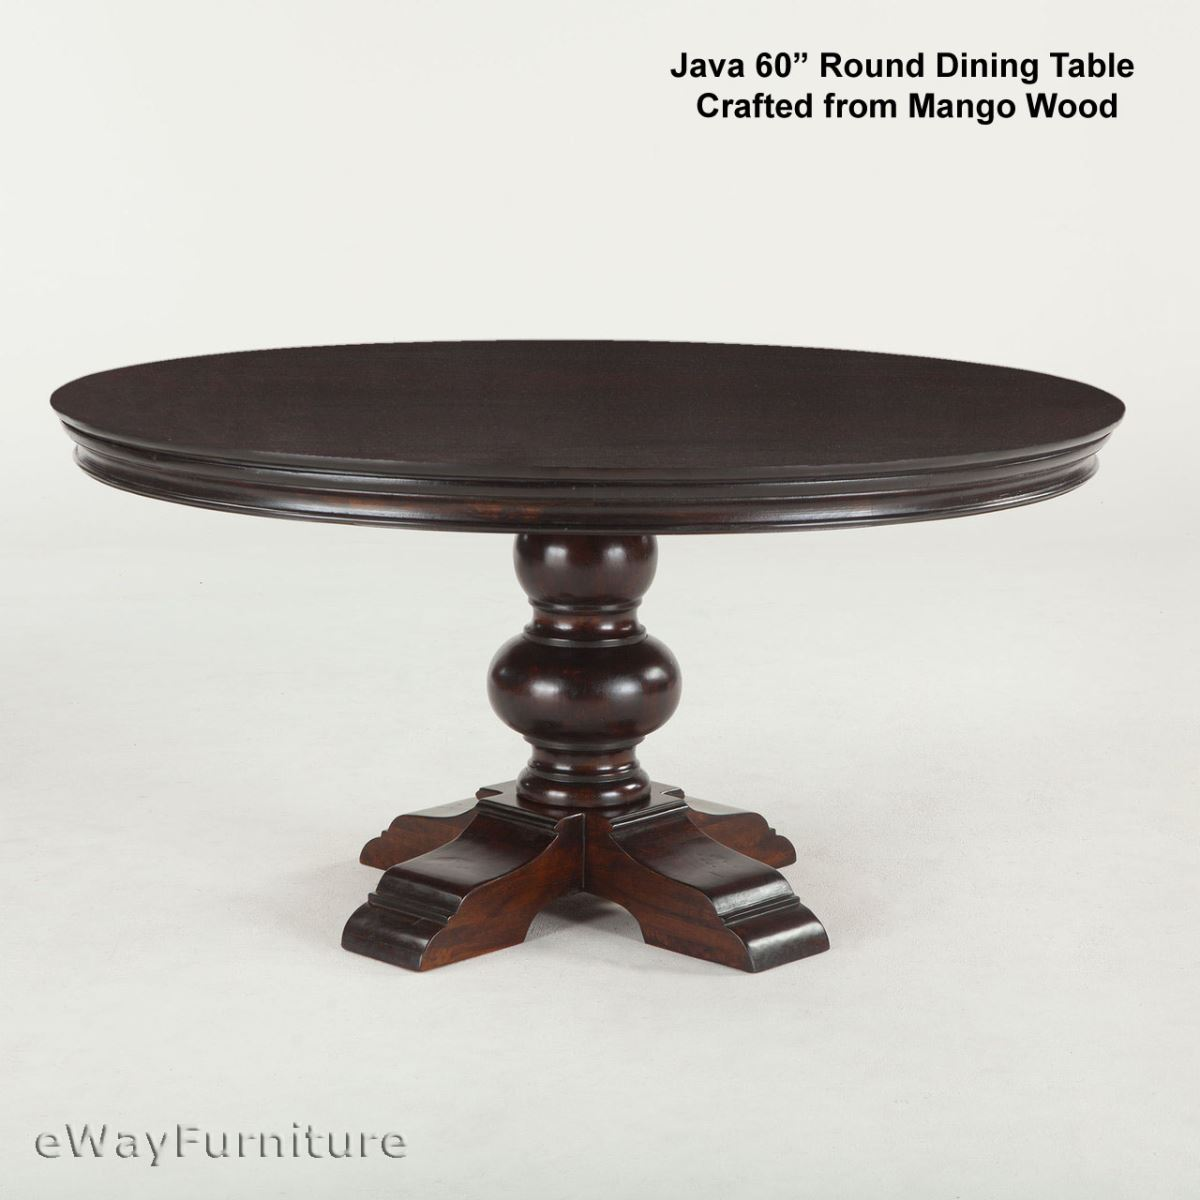 Java round dining table 60 inch for 60 inch round dining table